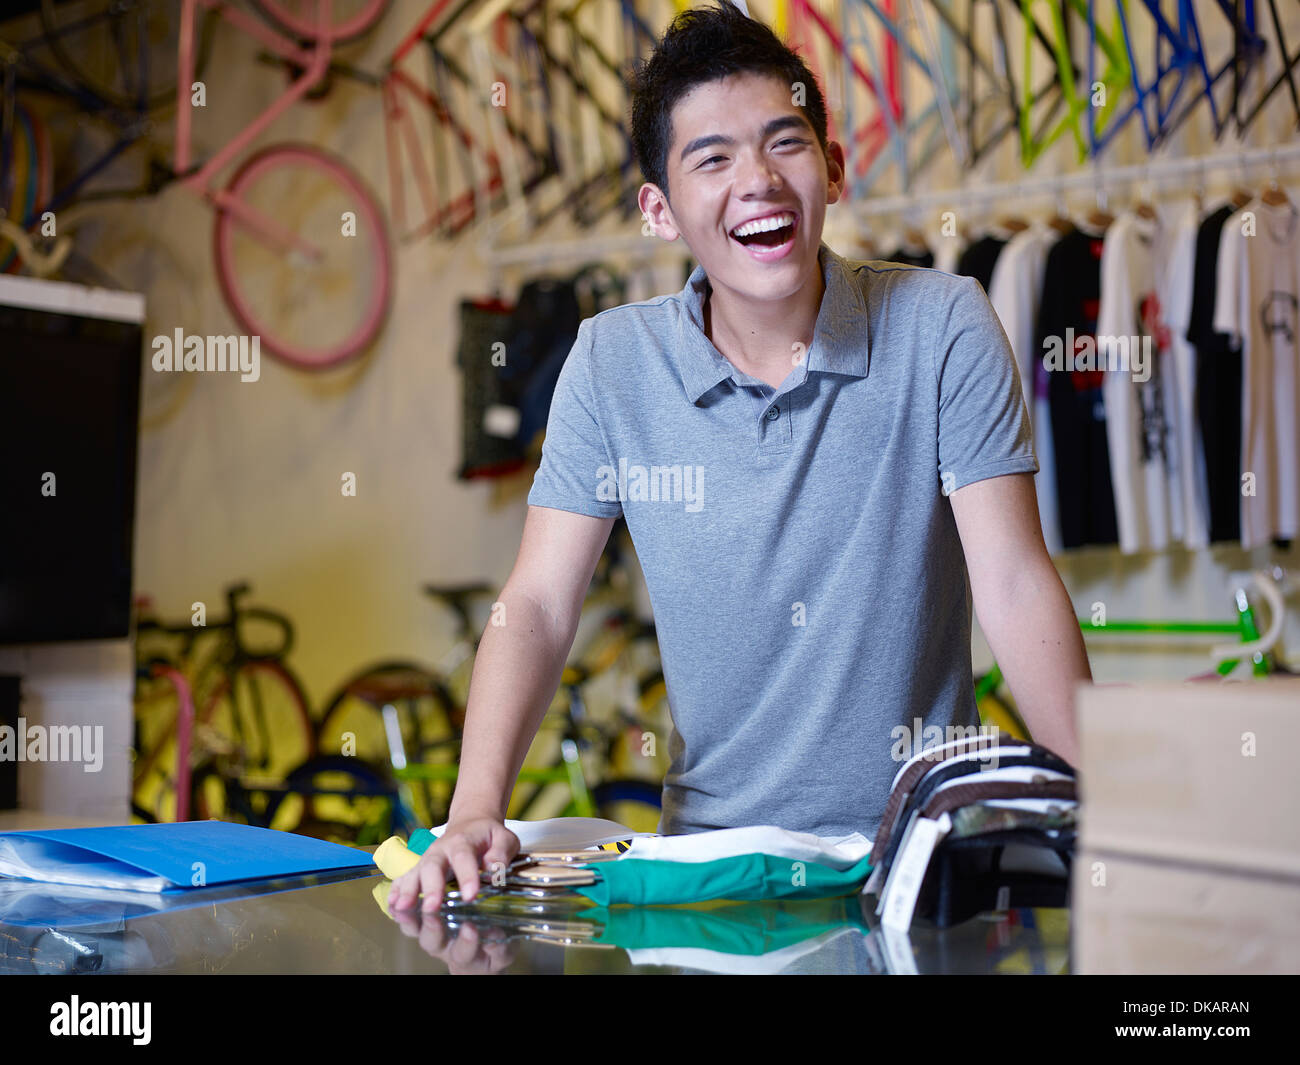 Portrait of young man in bike shop Photo Stock